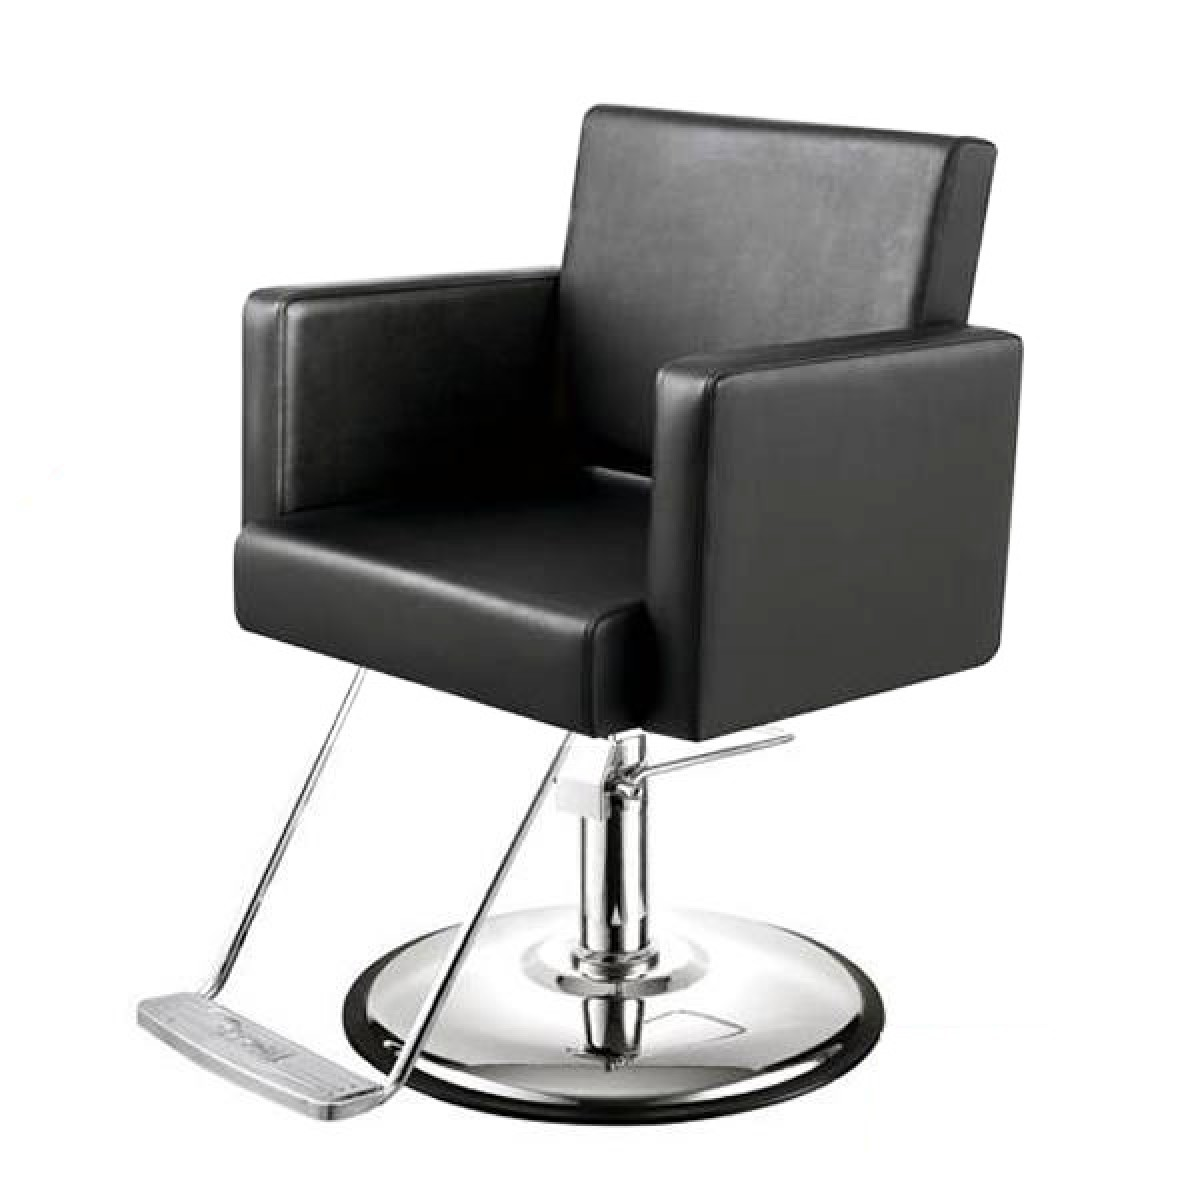 Cosmetology Chair Quotcanon Quot Styling Chair Salon Chairs Salon Equipment